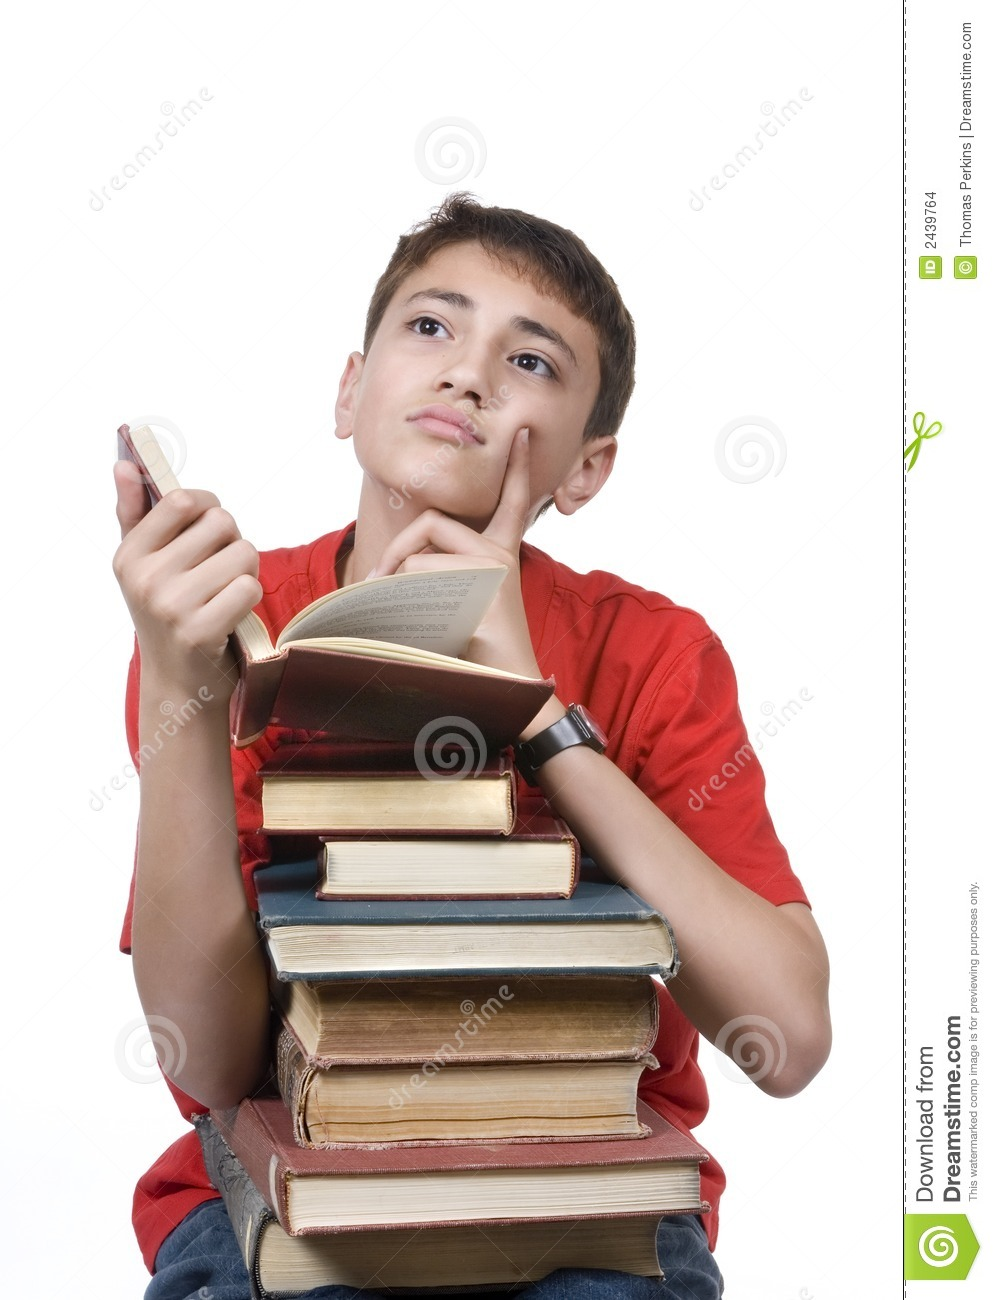 Http Www Dreamstime Com Stock Images Boy Reading Image2439764